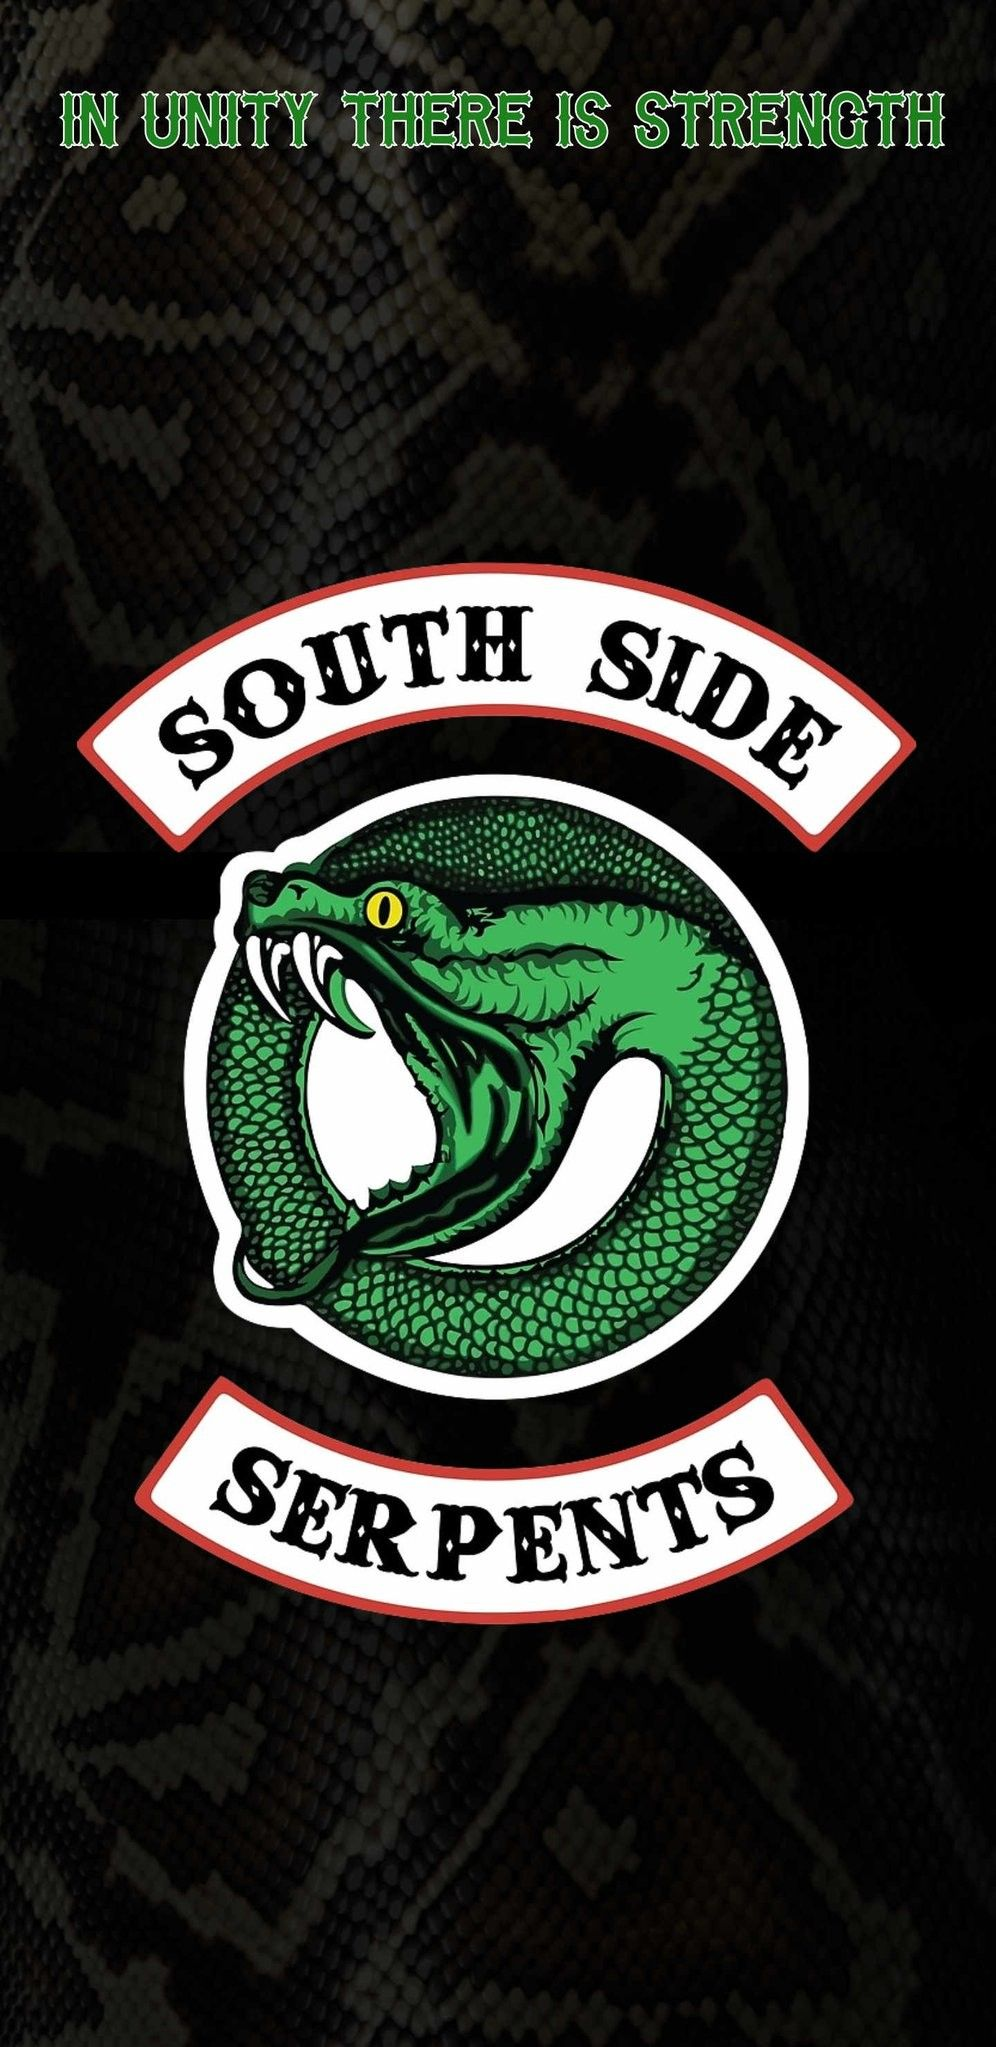 South Side Serpents Riverdale Wallpaper Hd Riverdale Serpent Tattoo Serpent